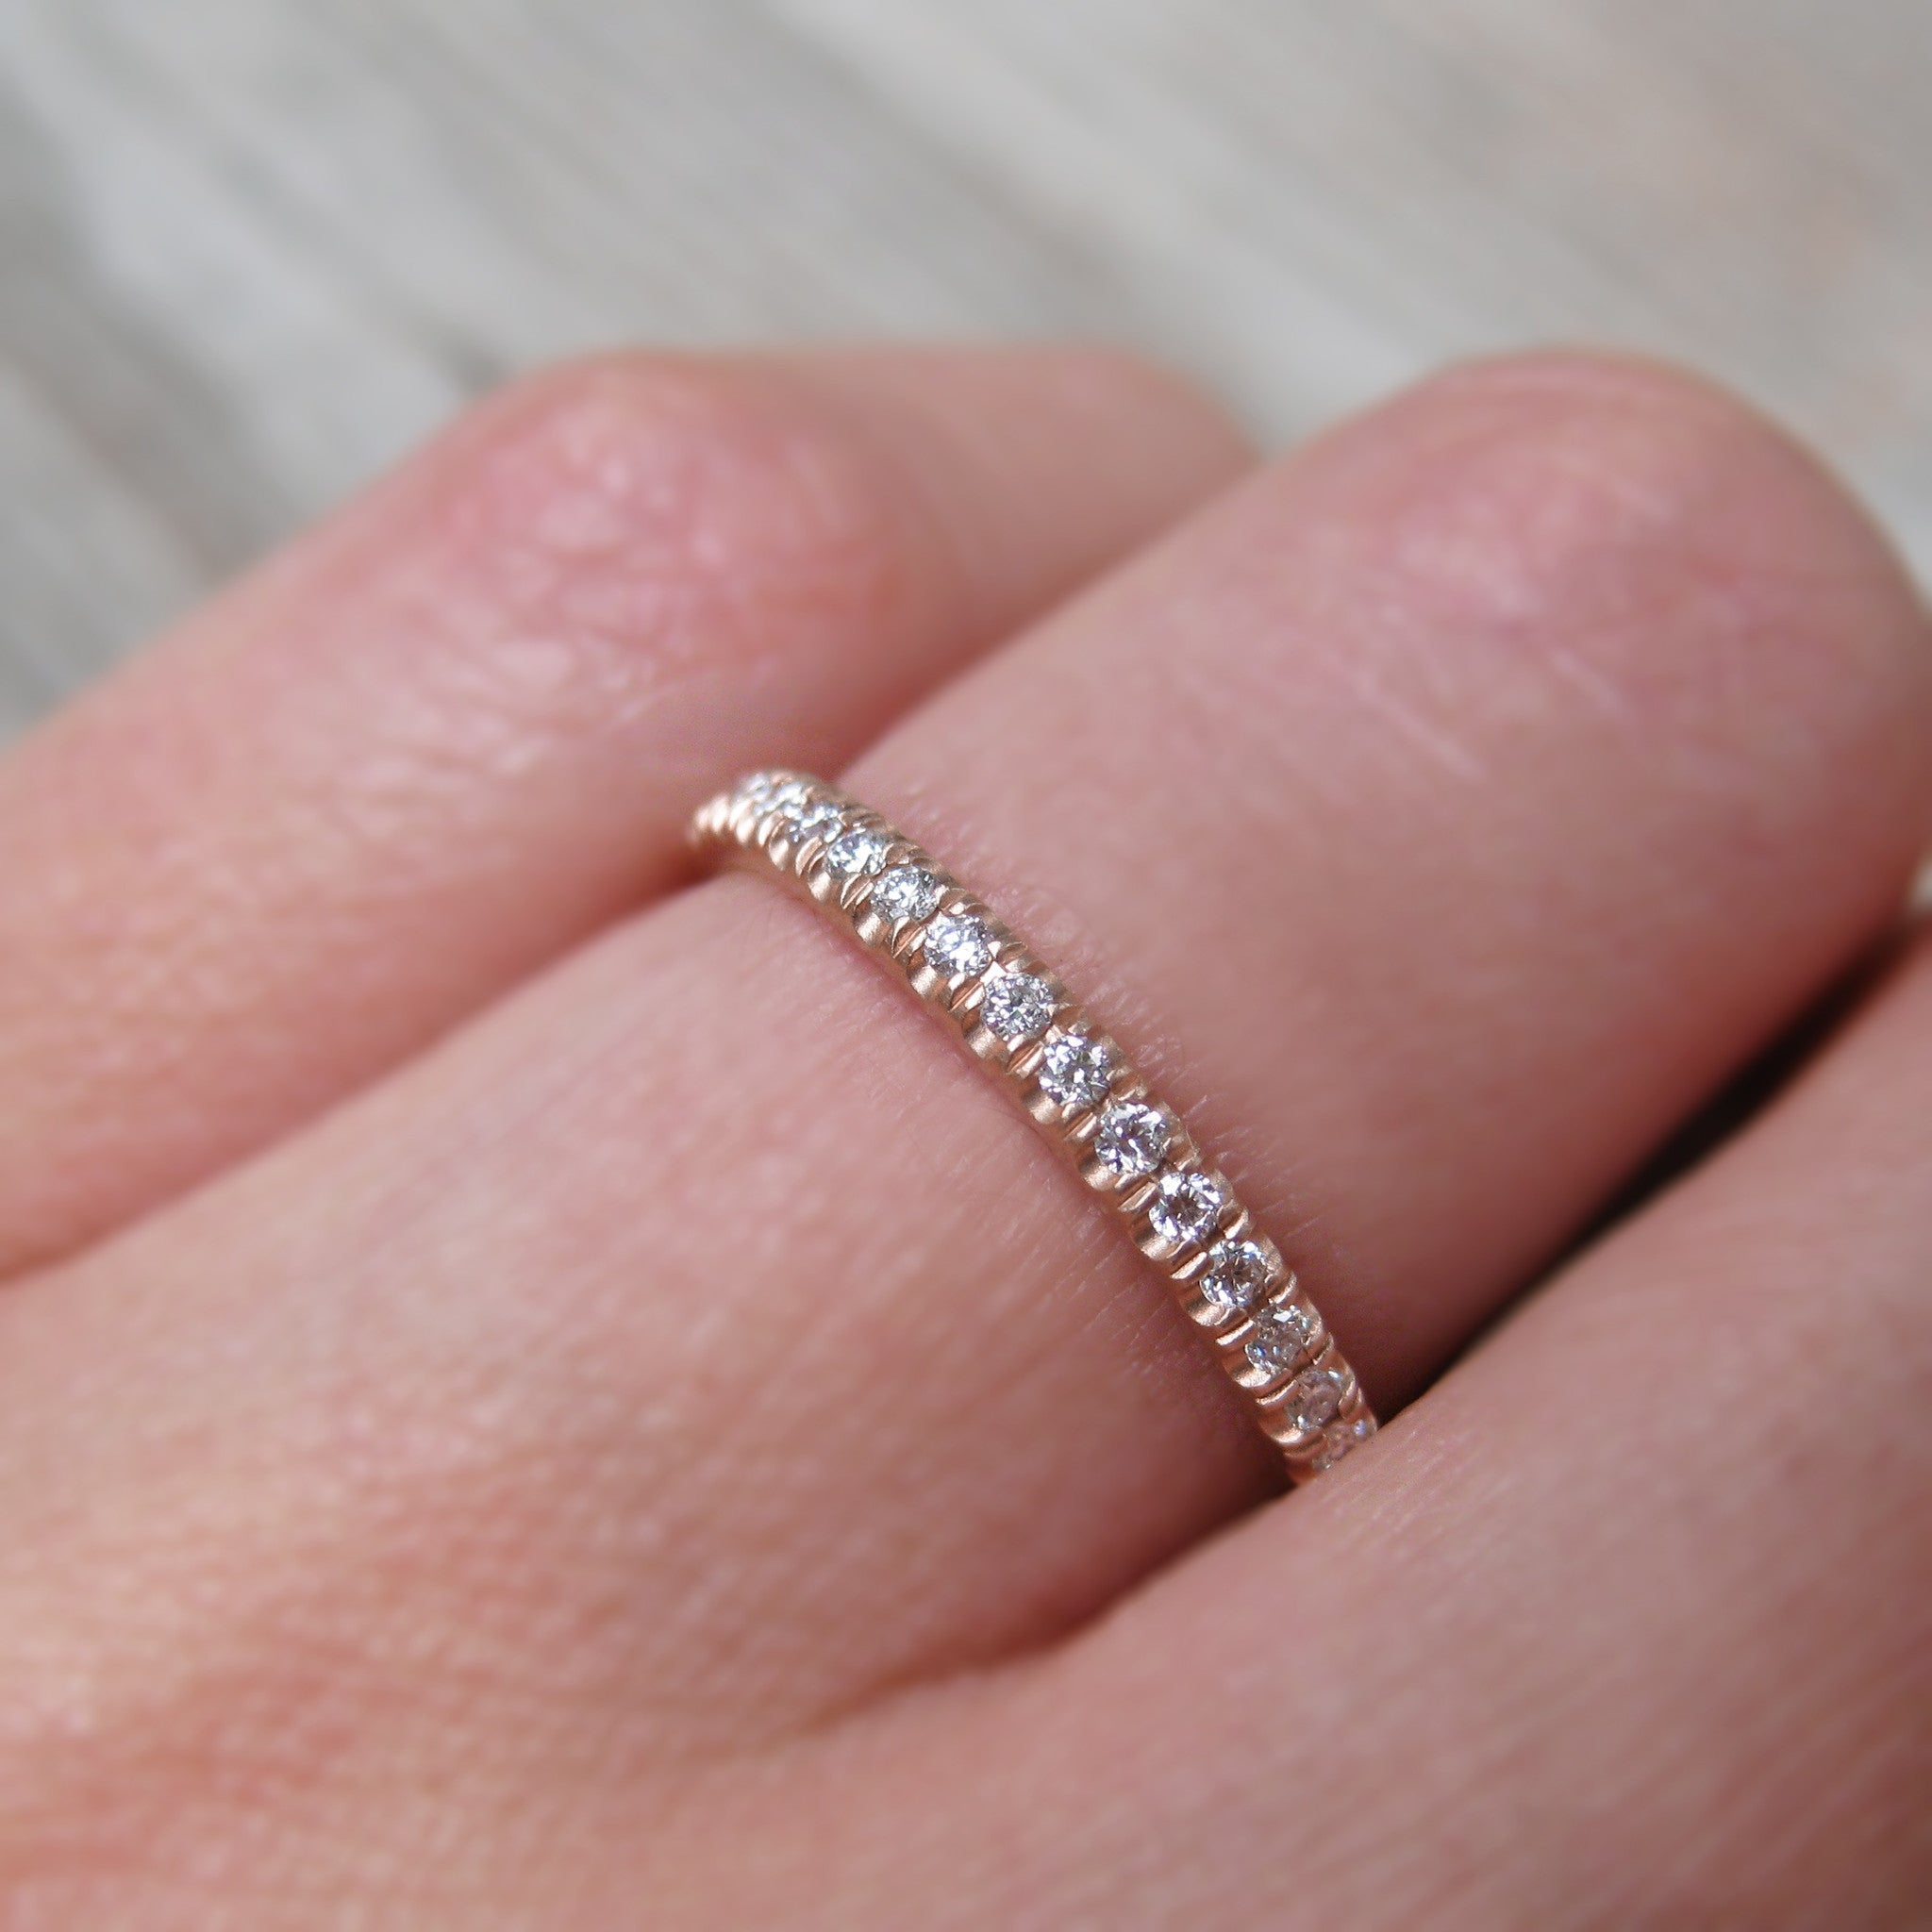 shane band pave bands infinity wedding set m twist diamond p co